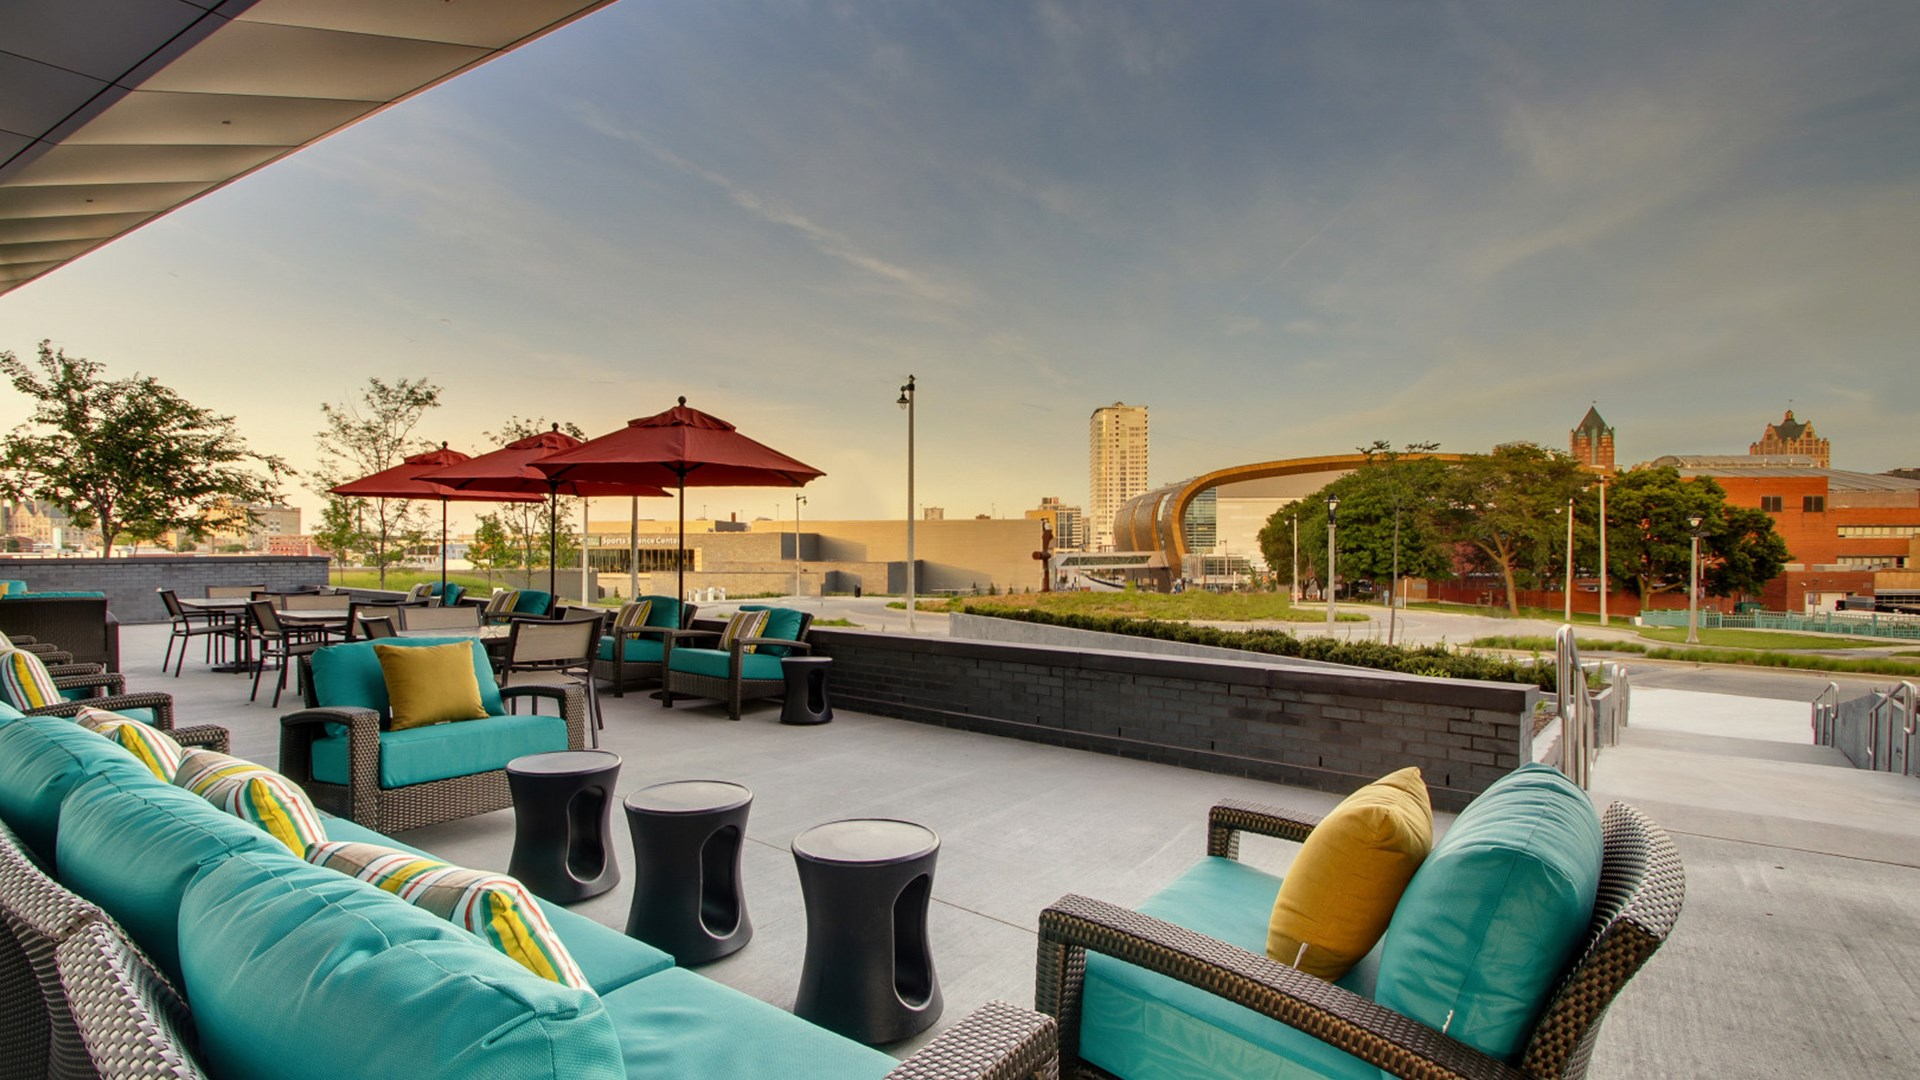 Hyatt Place Outdoor Patio